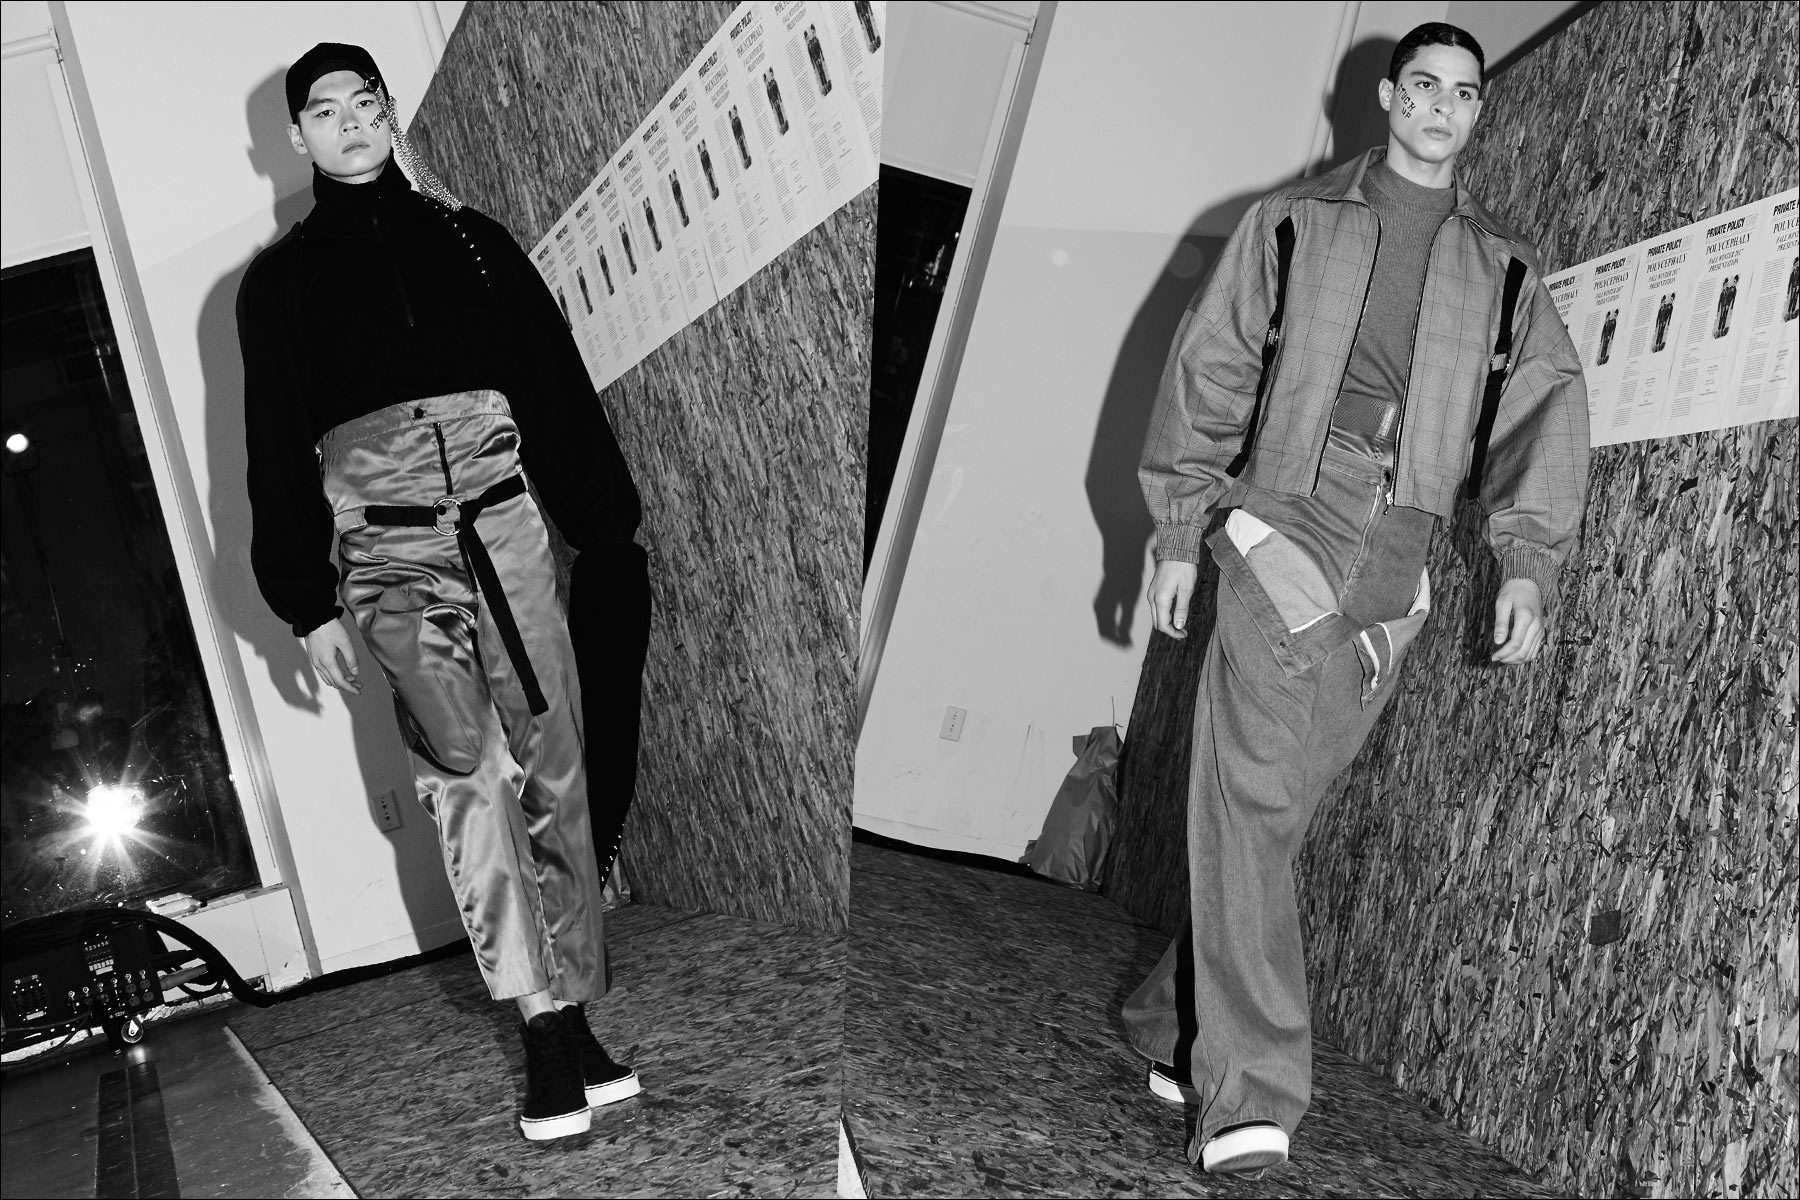 Male models walk the runway presentation for Private Policy F/W17 menswear show. Photography by Alexander Thompson for Ponyboy magazine NY.